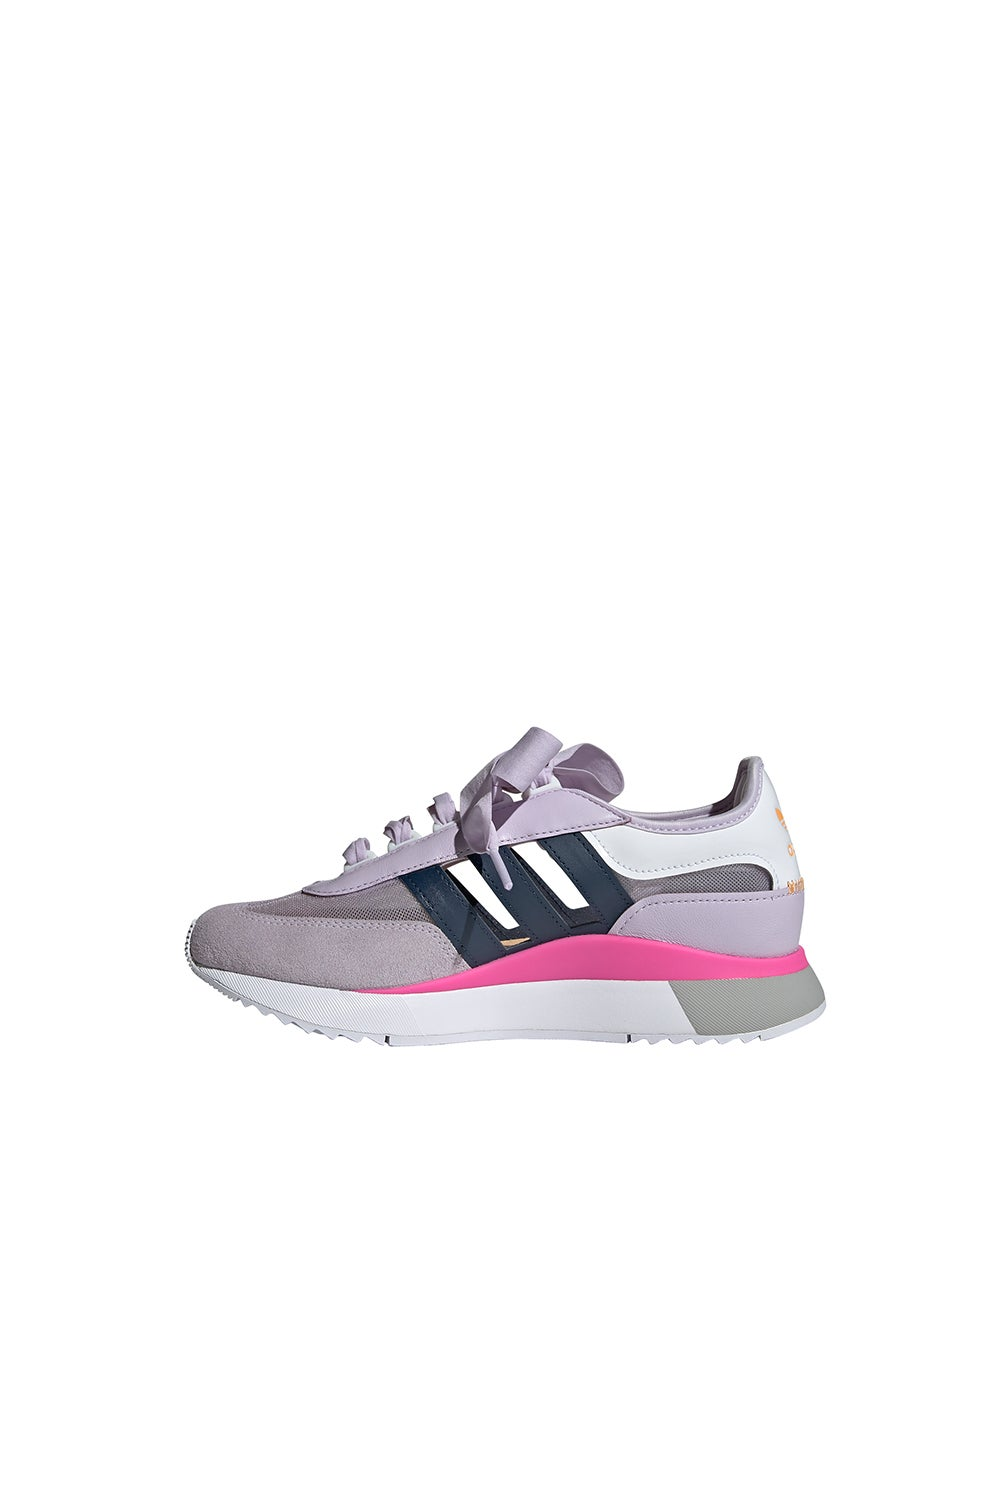 adidas SL Andridge Lite W Shoes Purple Tint